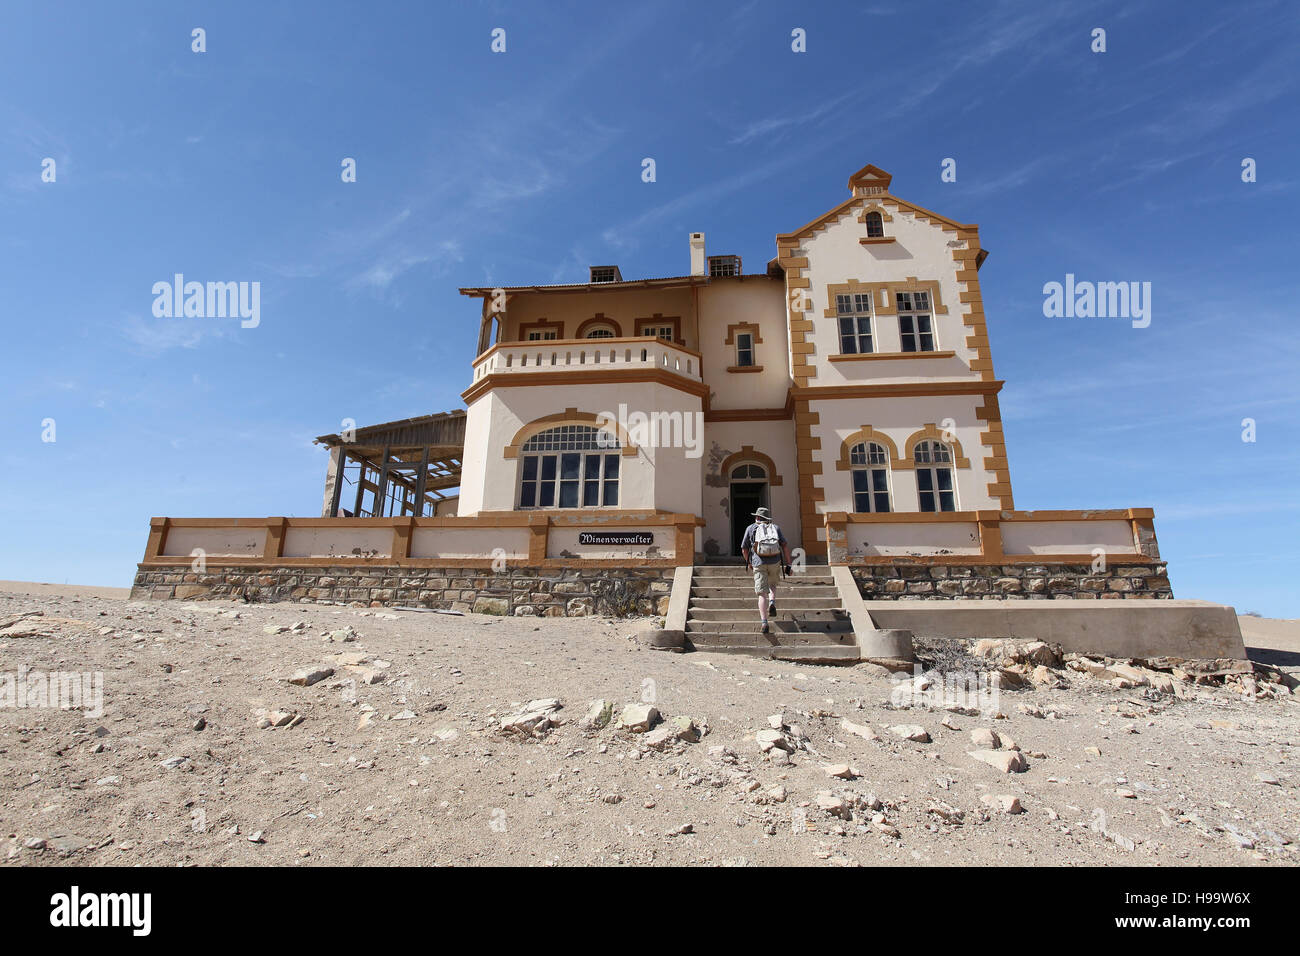 Mine Managers House at Kolmanskop Ghost Town at Luderitz in Namibia - Stock Image